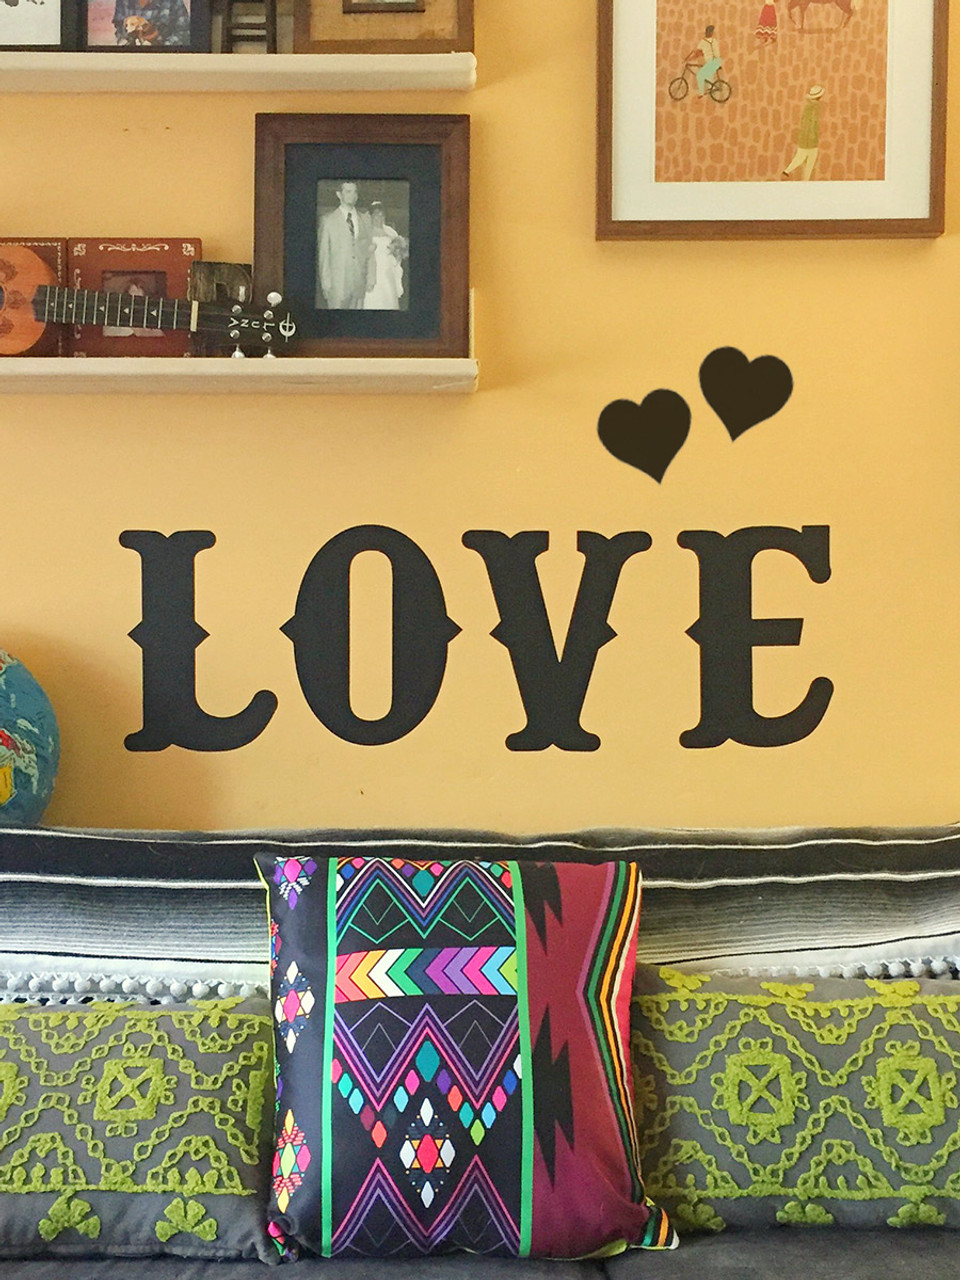 Removable LOVE Chalkboard Wall Decals by Earmark Social Goods Inc.